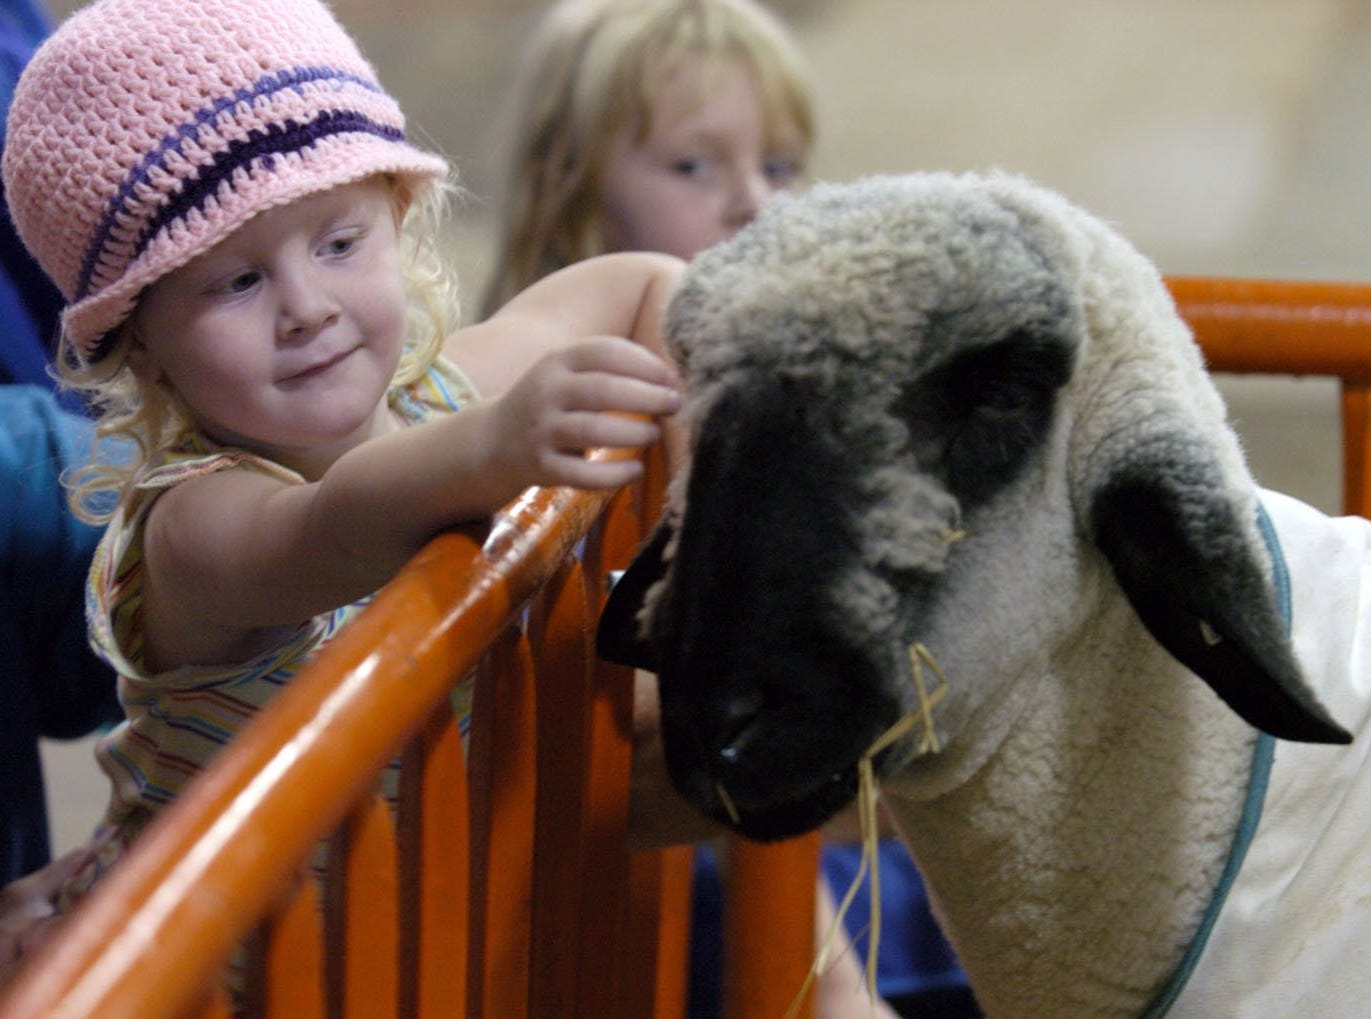 Sarah Jackson, 3 yrs. old, from New Albany, In., plays with a Suffolk sheep as her sister Wendy Jackson, 5 yrs. old, watches on the last day of the Kentucky State Fair in Louisville, Ky.